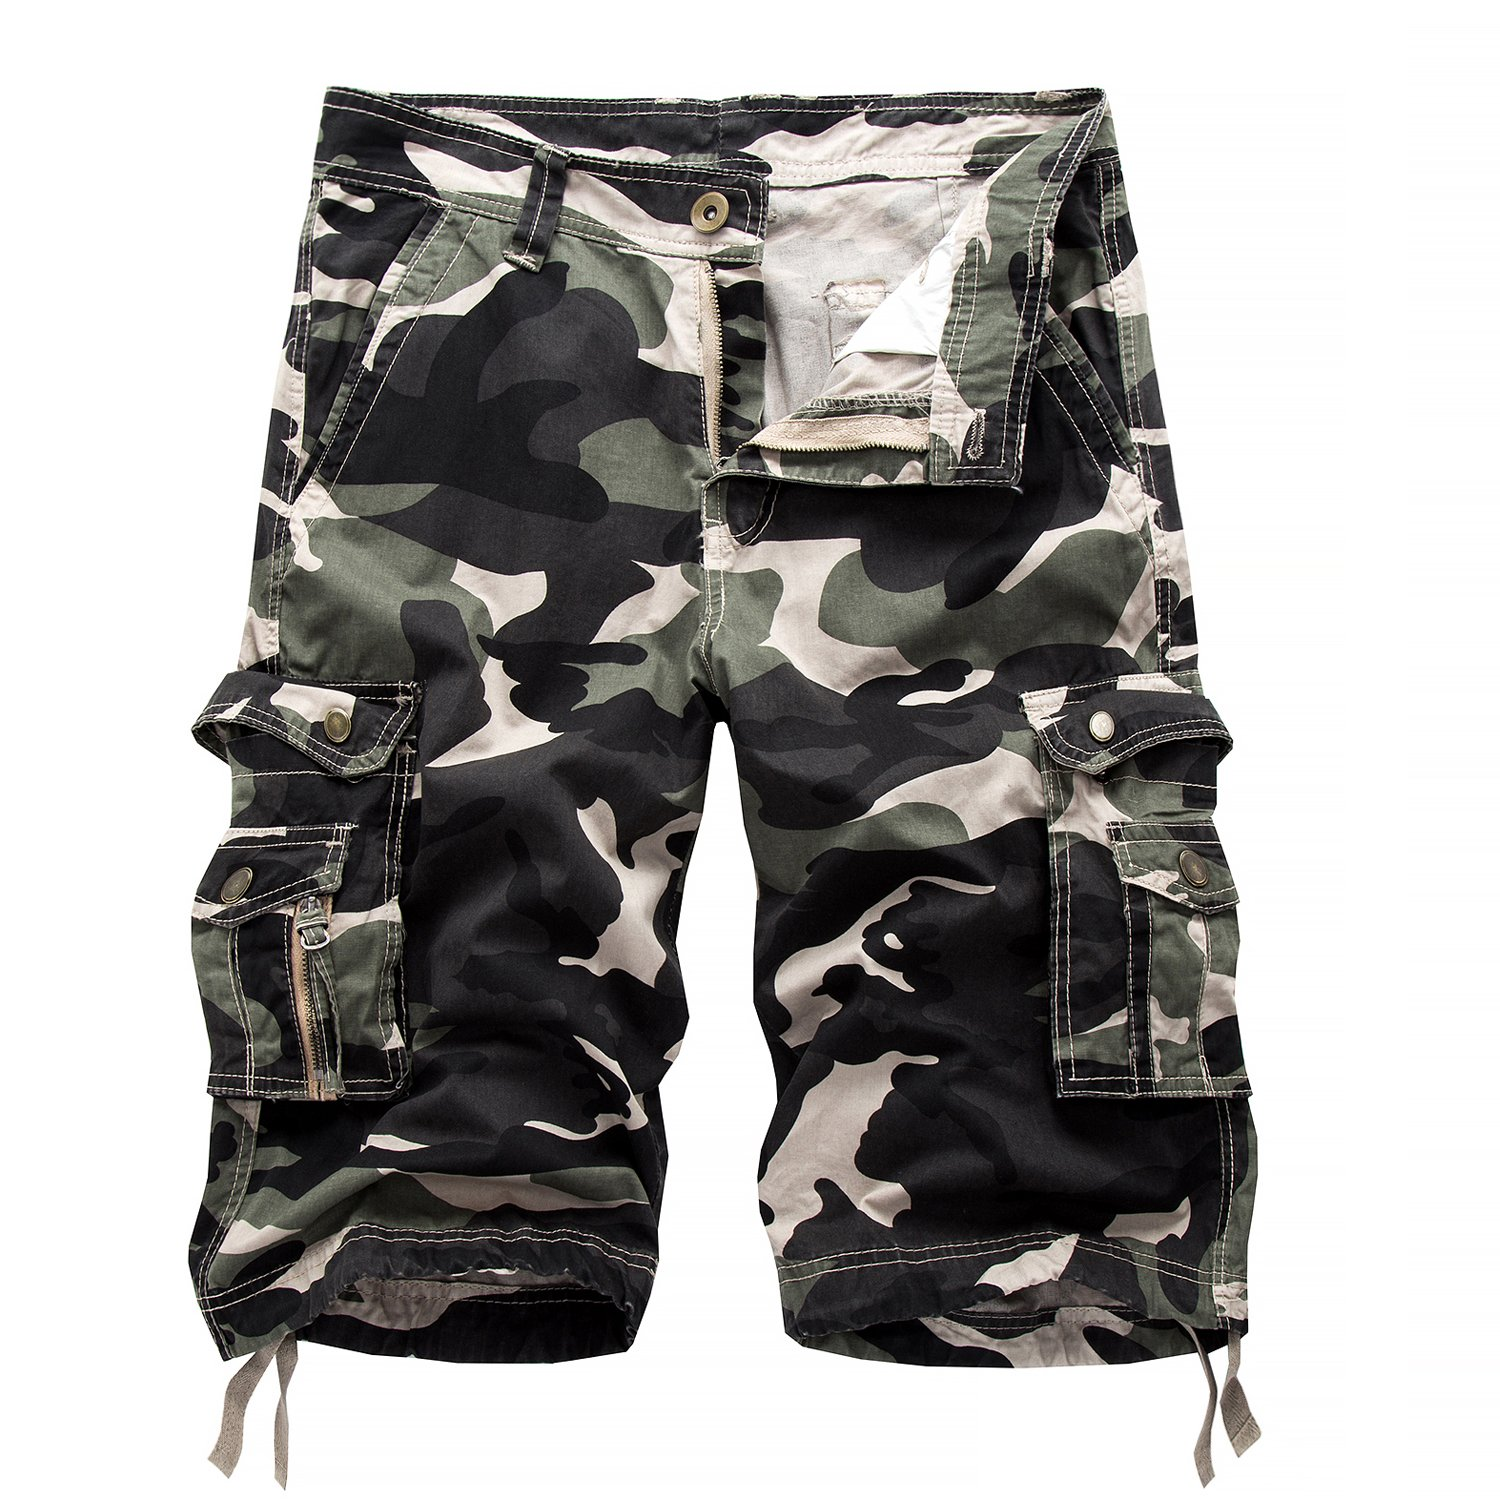 Hycsen Mens Cotton Relaxed Fit Fit Outdoor Camouflage Camo Cargo Shorts-Shallow army-36